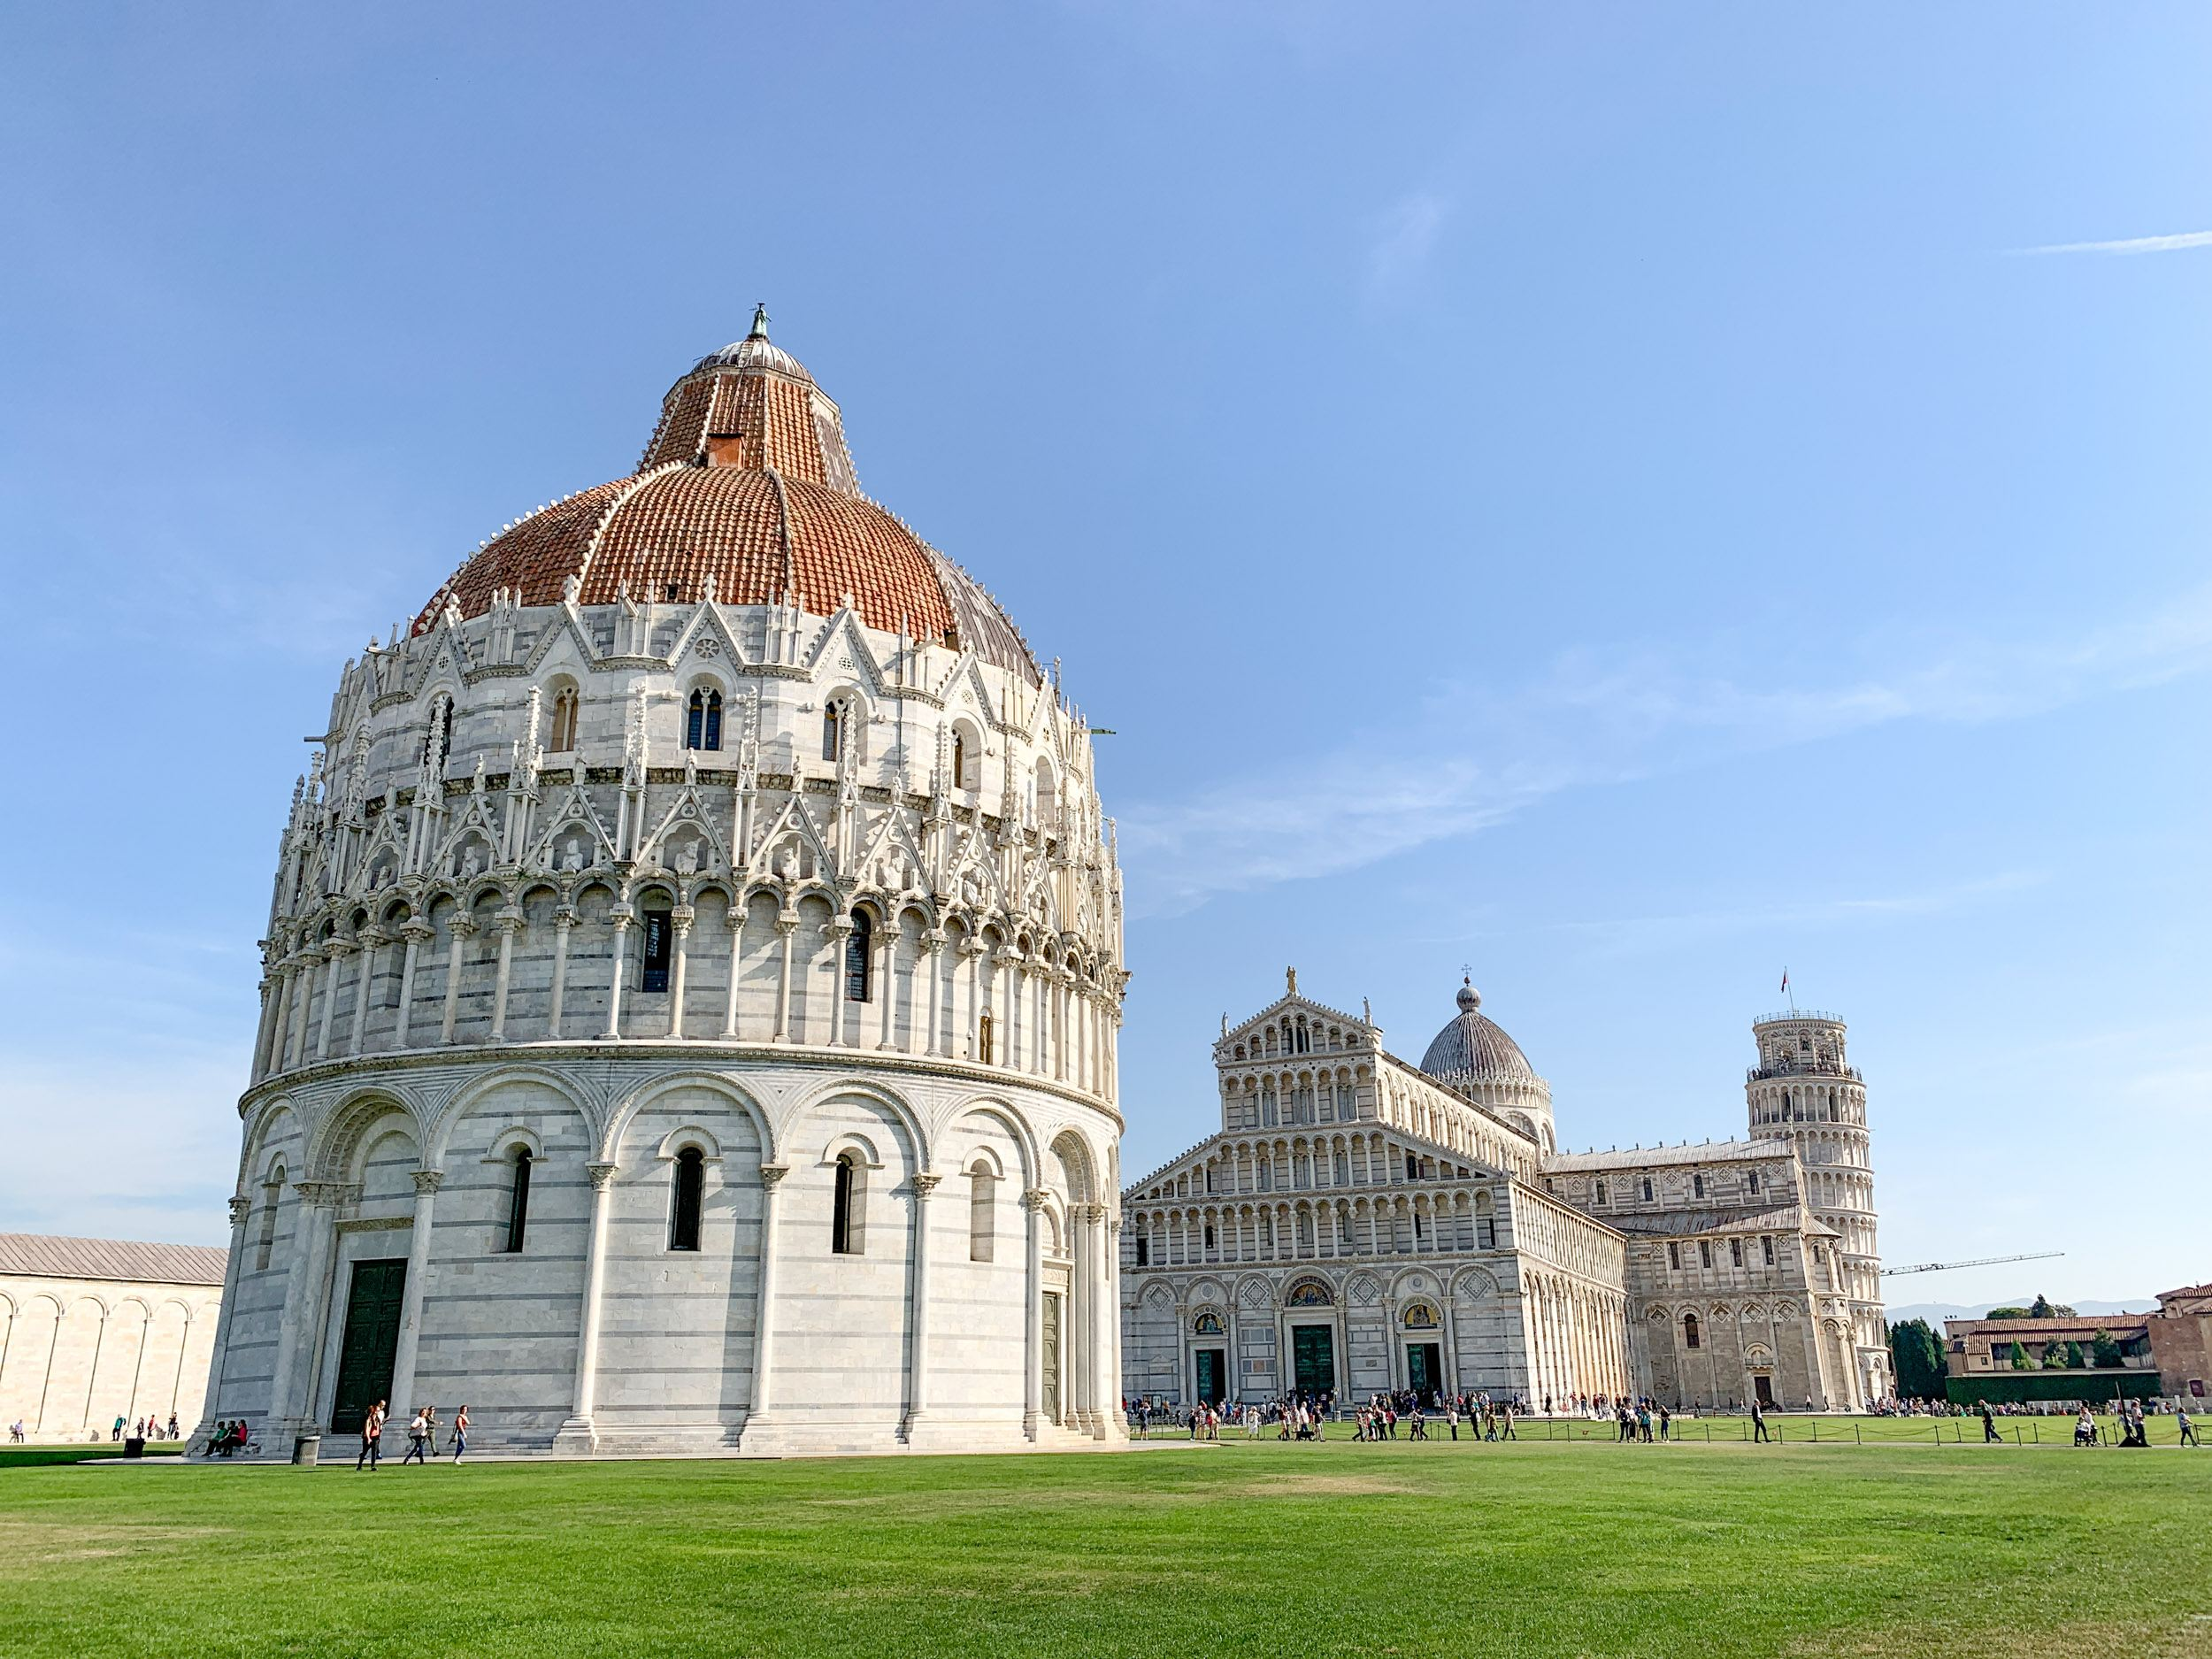 Pisa Baptistery (foreground), Cathedral, and Tower